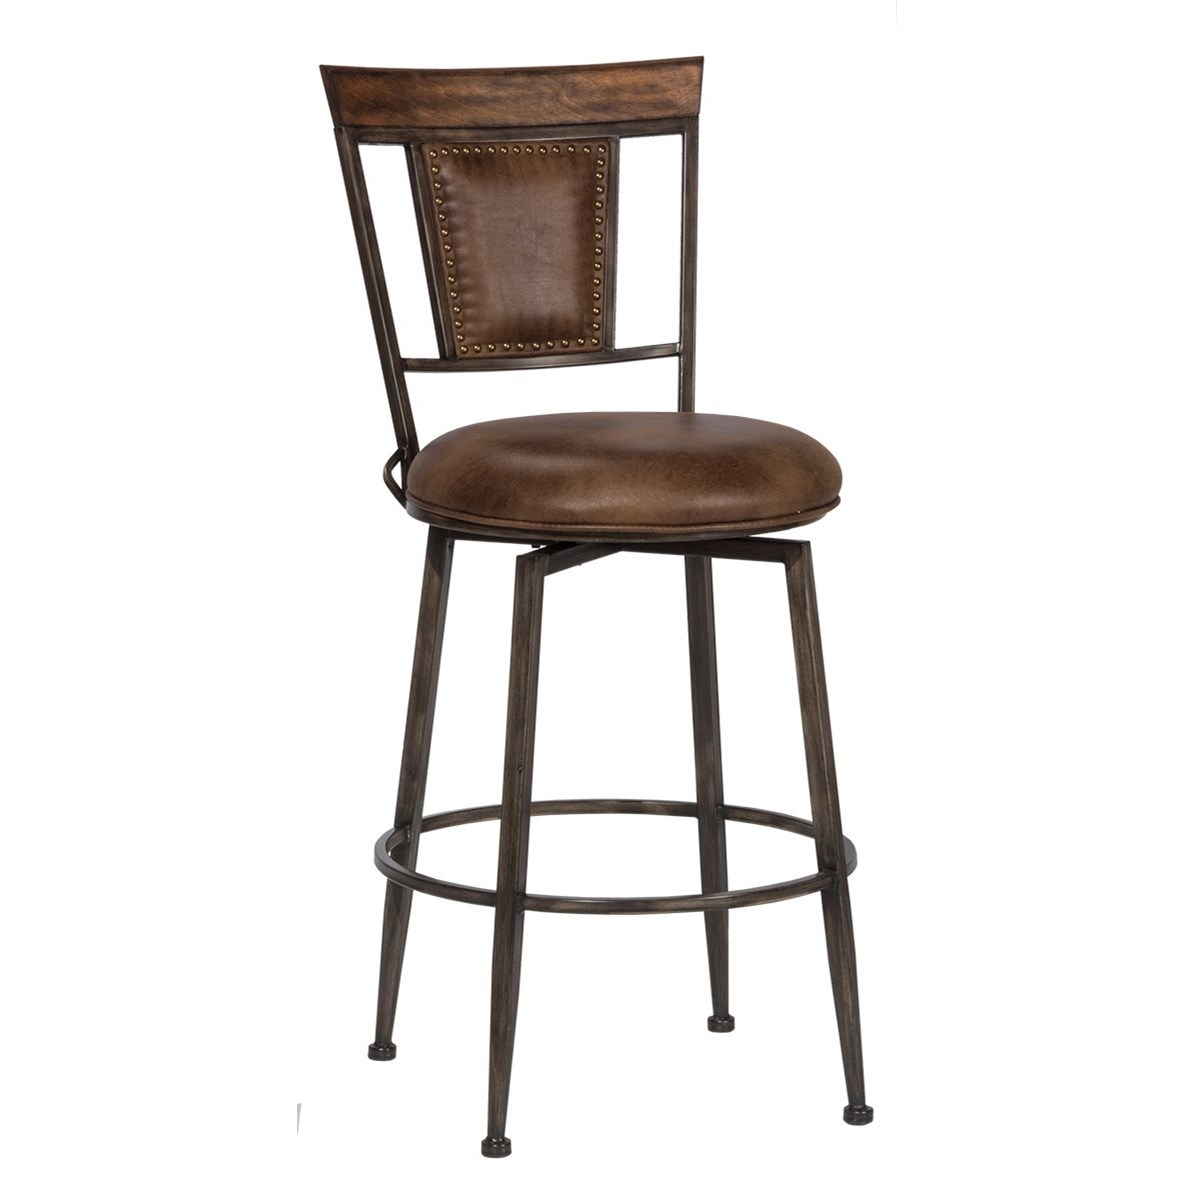 Danforth Commercial Grade Swivel Bar Stool by Hillsdale at Novello Home Furnishings